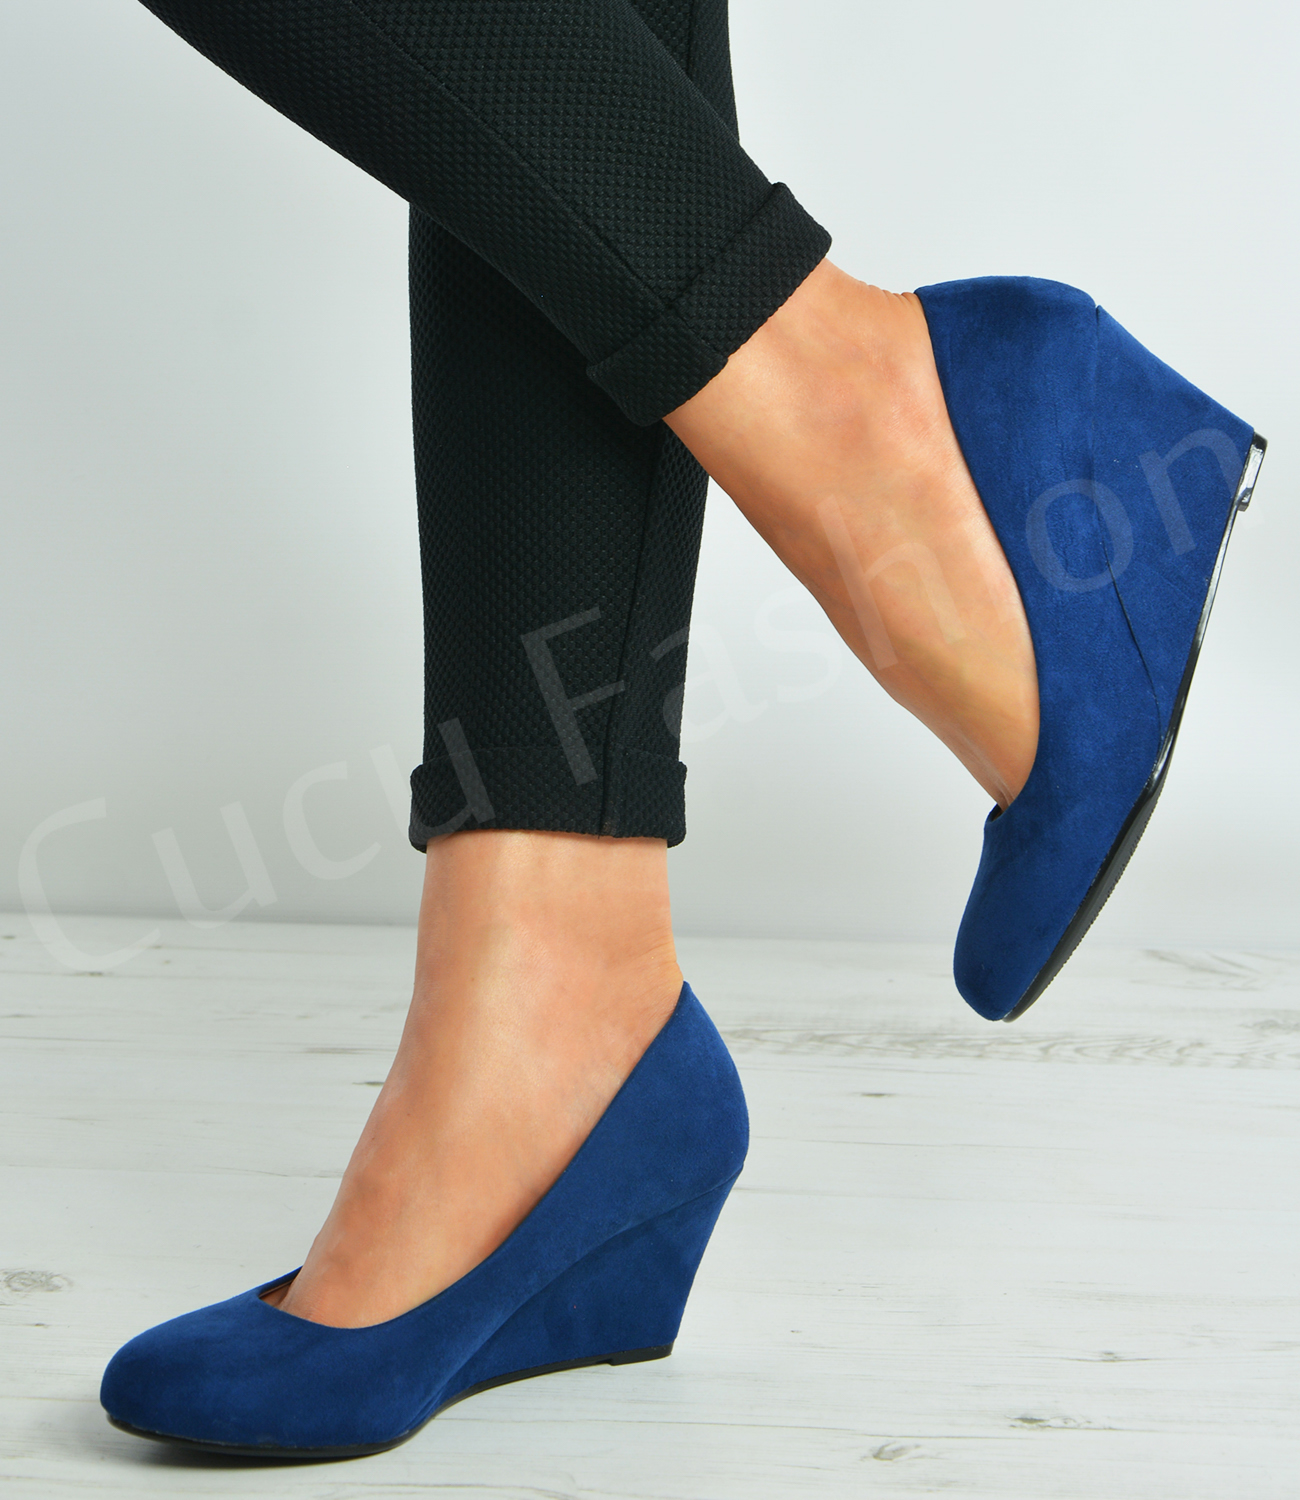 New-Womens-Ladies-Slip-On-Court-Pumps-Wedges-High-Heels-Party-Shoes-Size-Uk-3-8